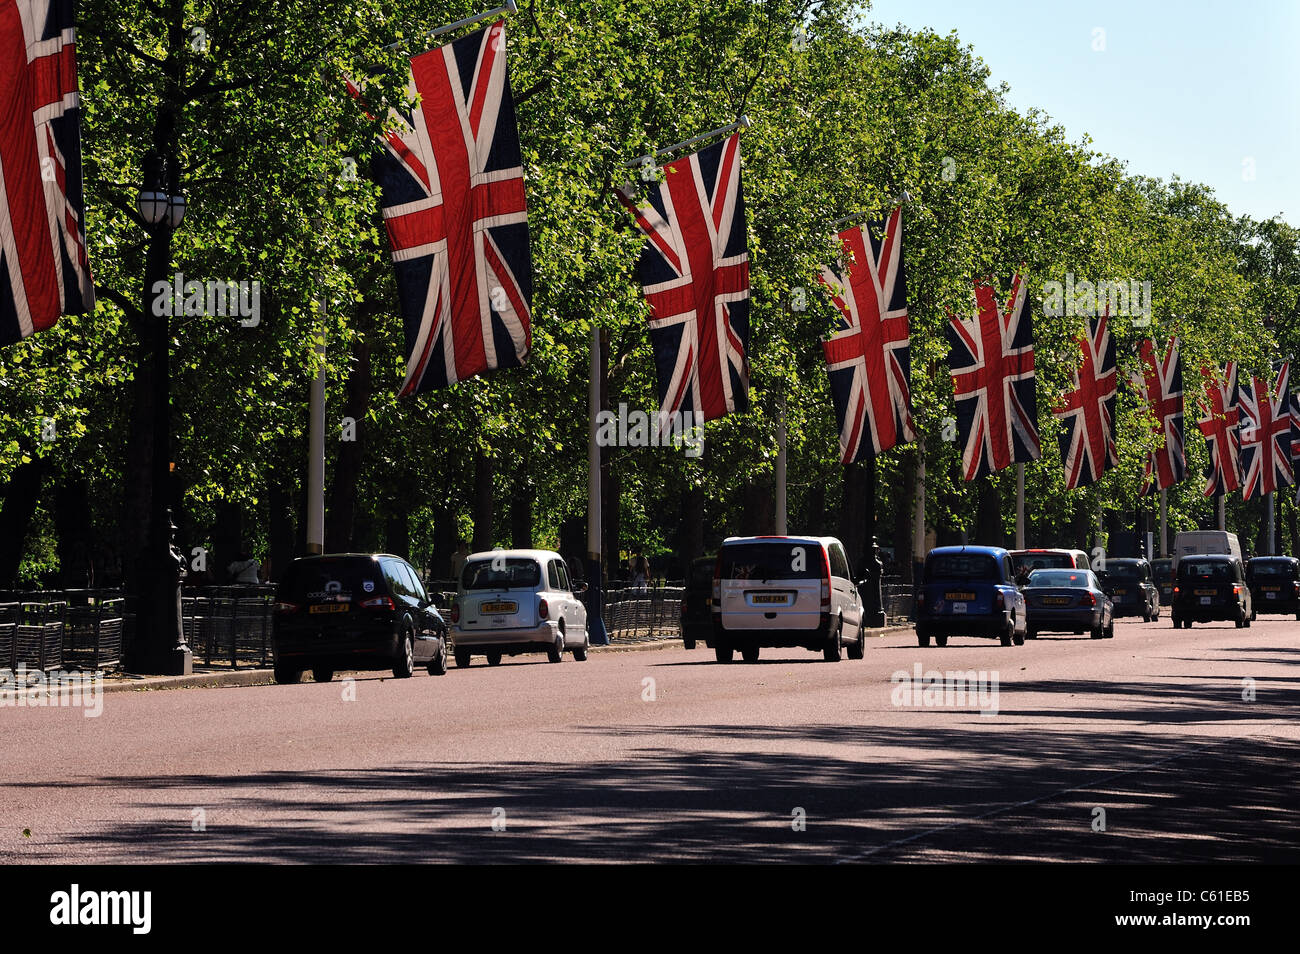 Union flags line The Mall, London - Stock Image